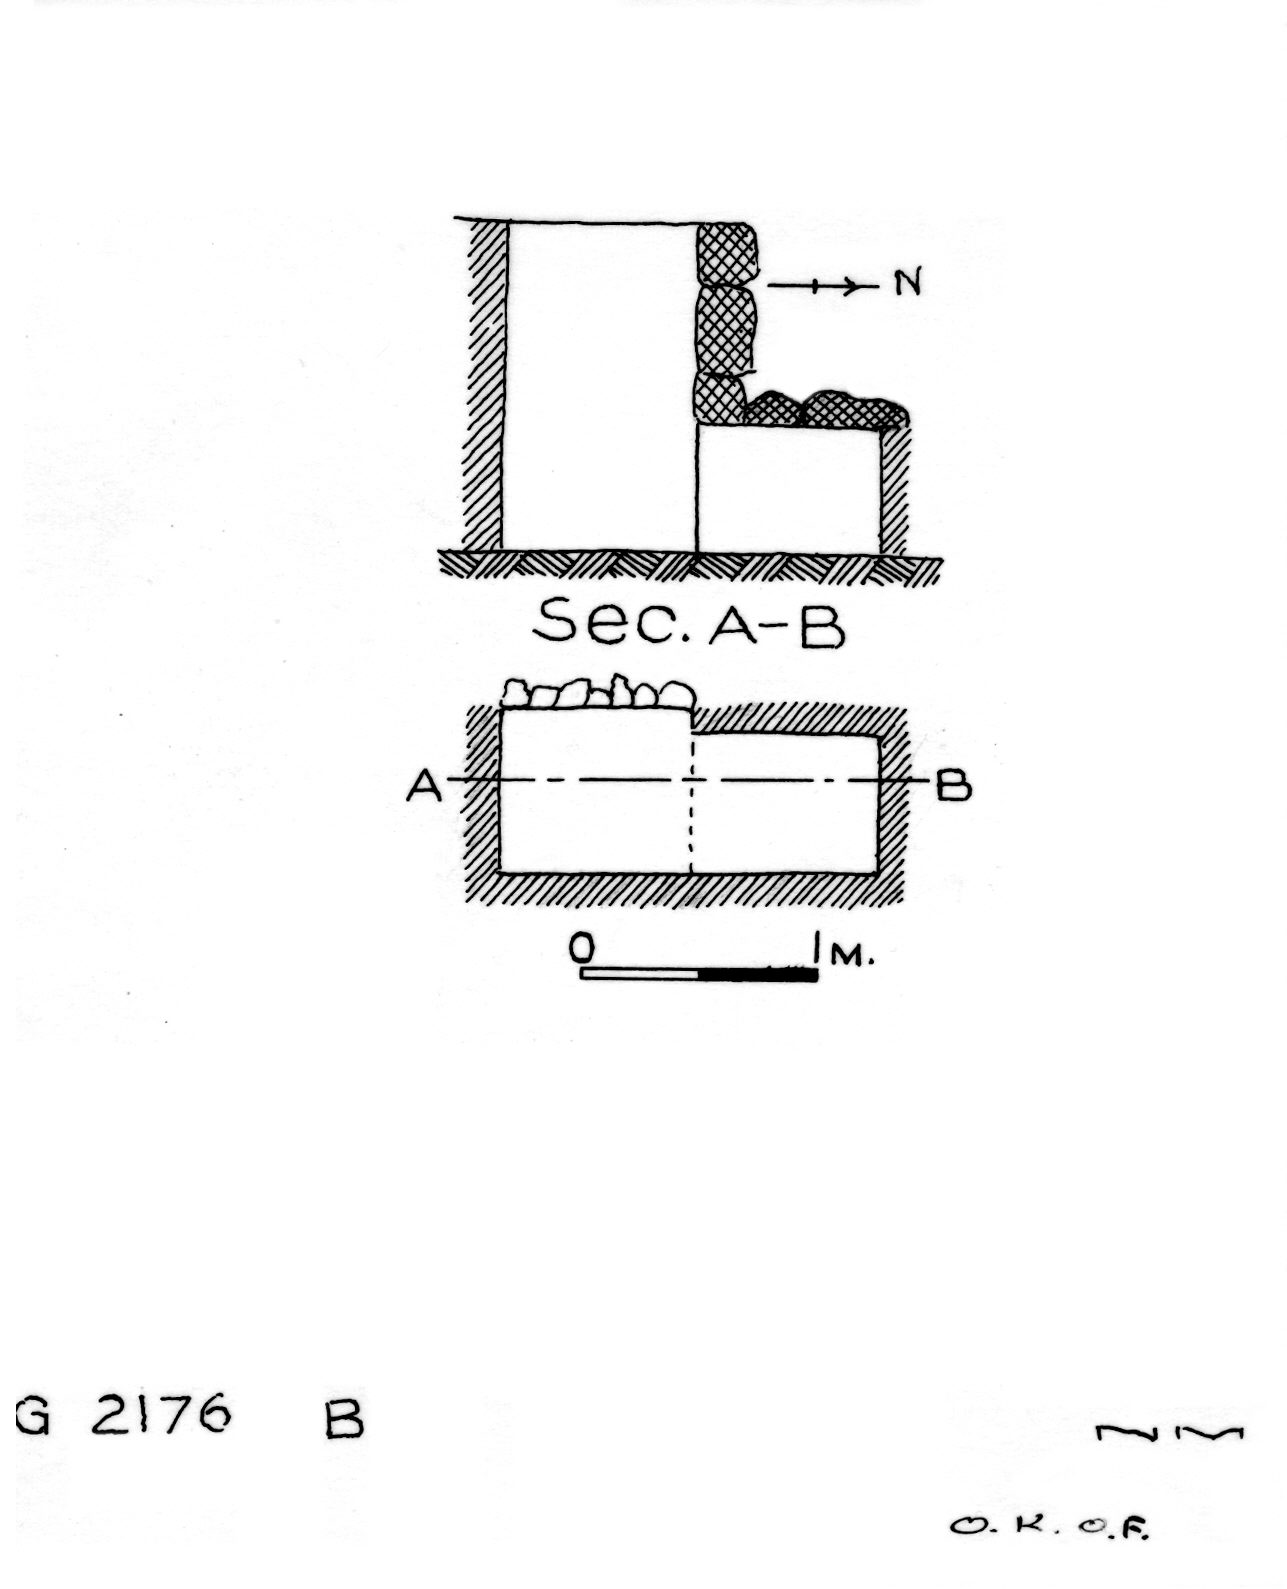 Maps and plans: G 2176, Shaft B